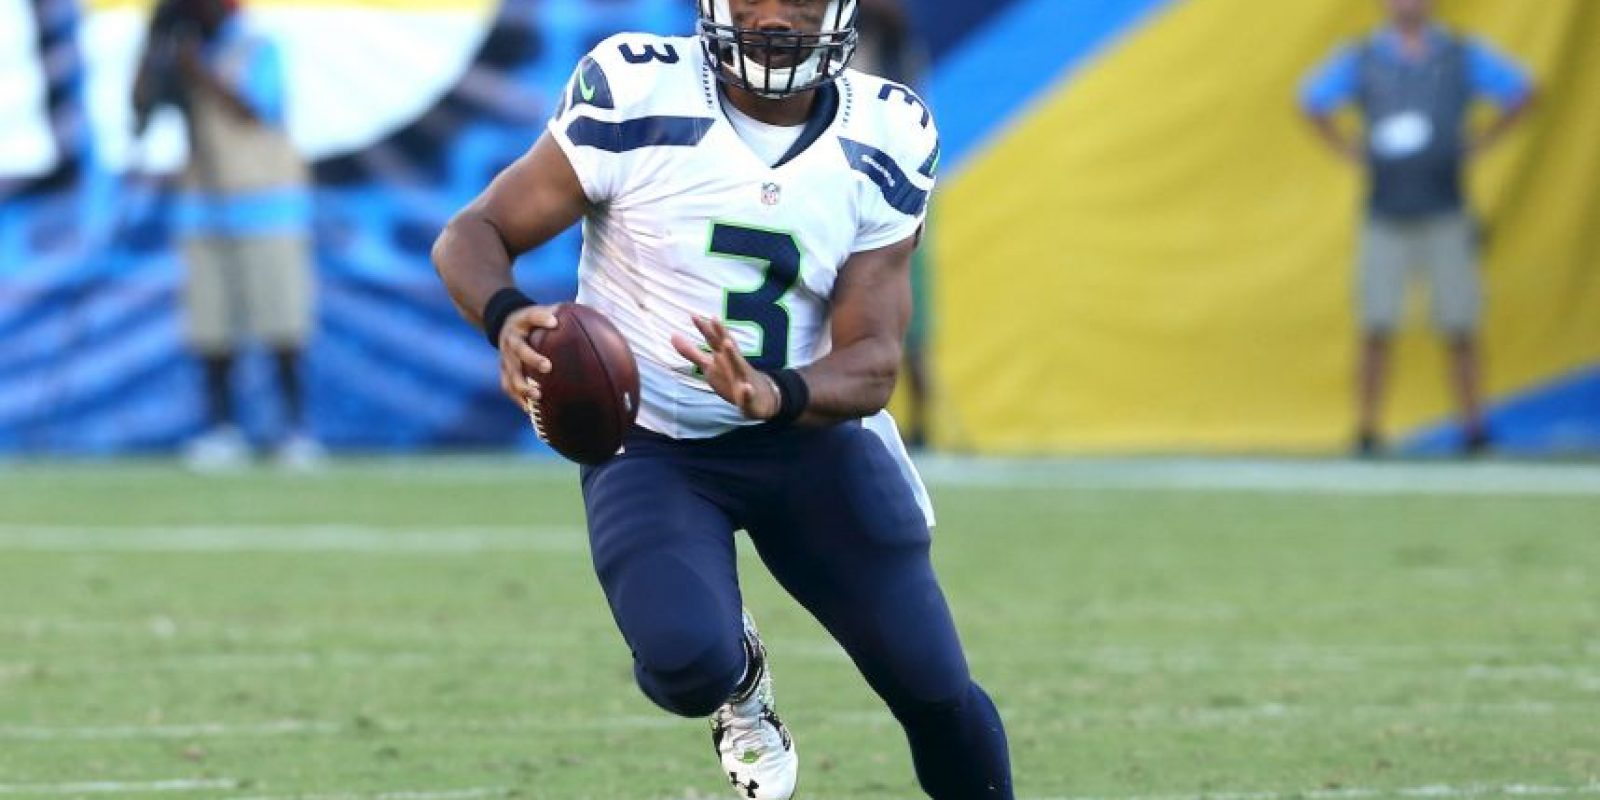 3. Russell Wilson busca revancha Foto: Getty Images